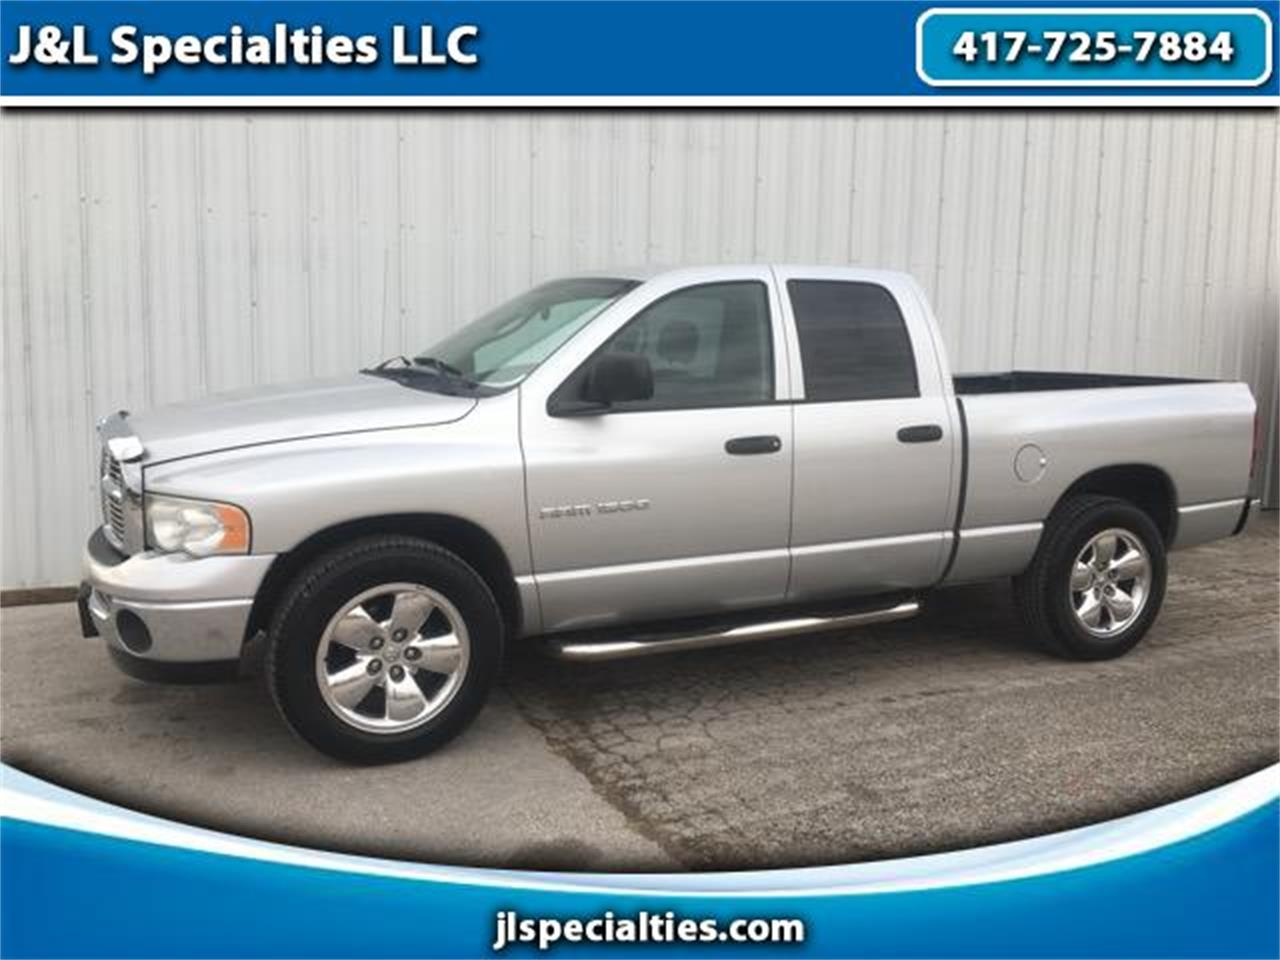 2005 Dodge Ram 1500 For Sale >> 2005 Dodge Ram 1500 For Sale Classiccars Com Cc 1042947